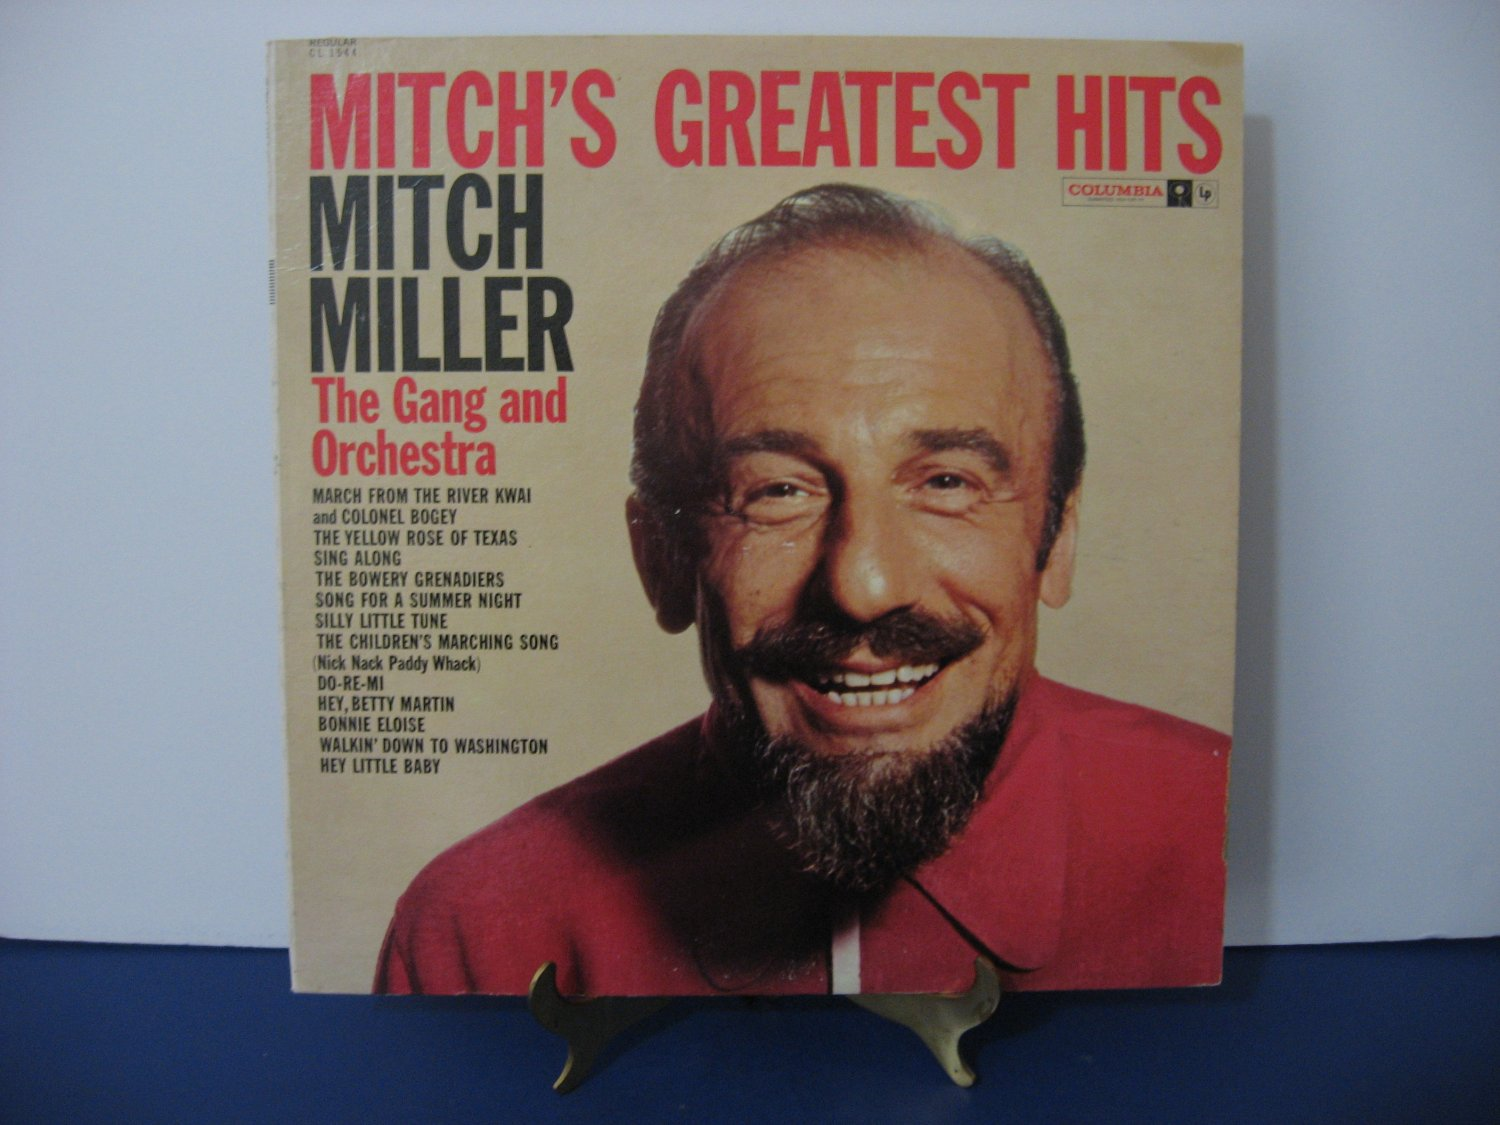 Mitch Miller The Gang And Orchestra - Greatest Hits  - Circa 1961